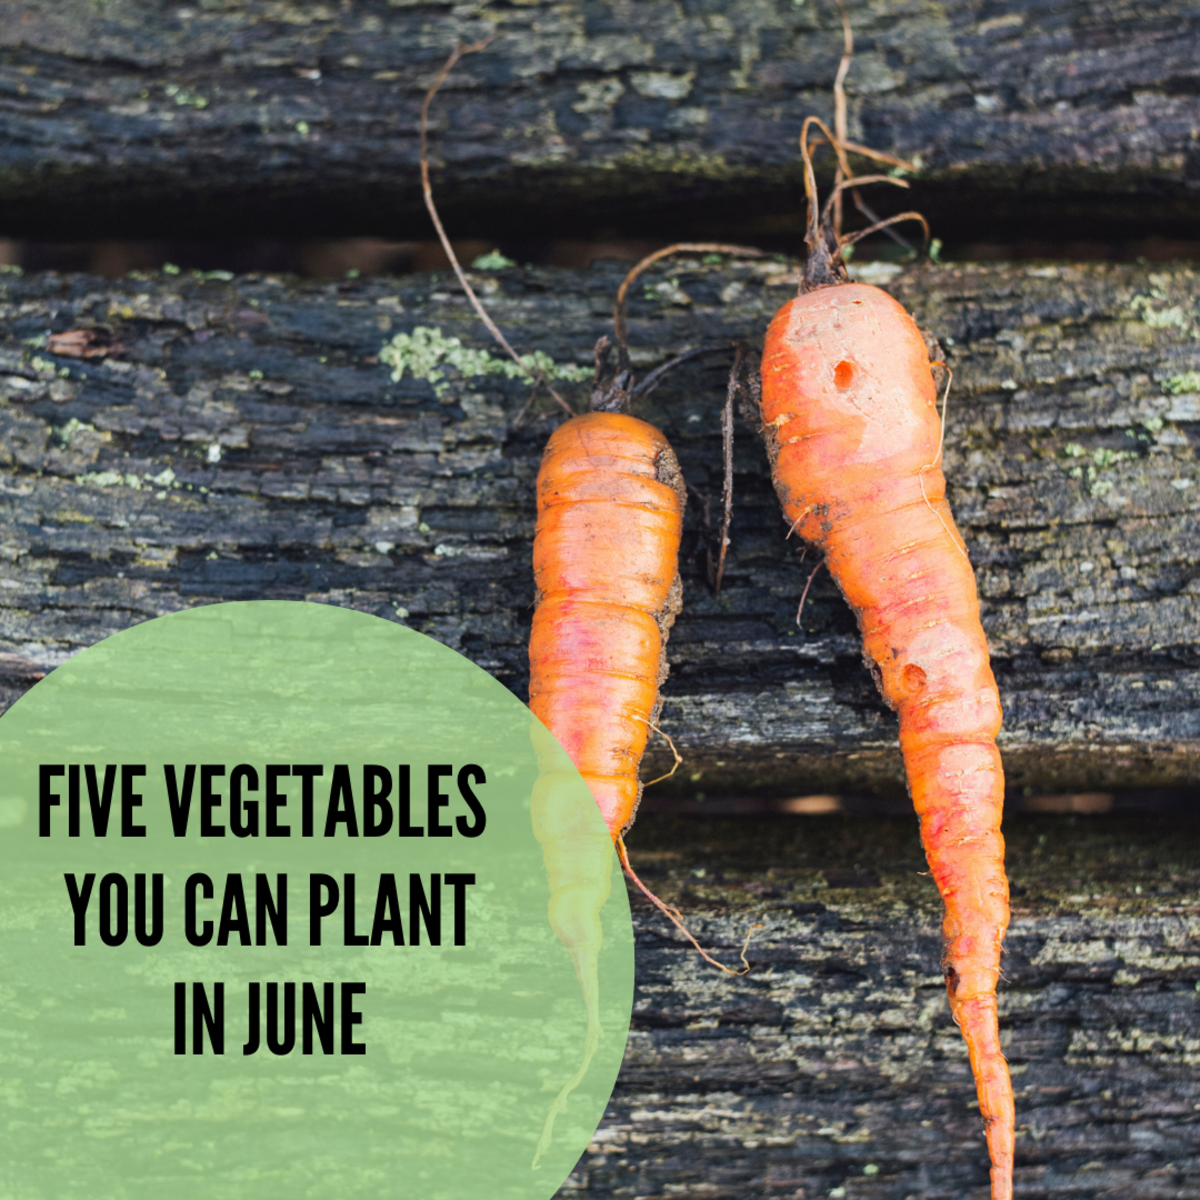 There are a number of vegetables you can plant in early summer.